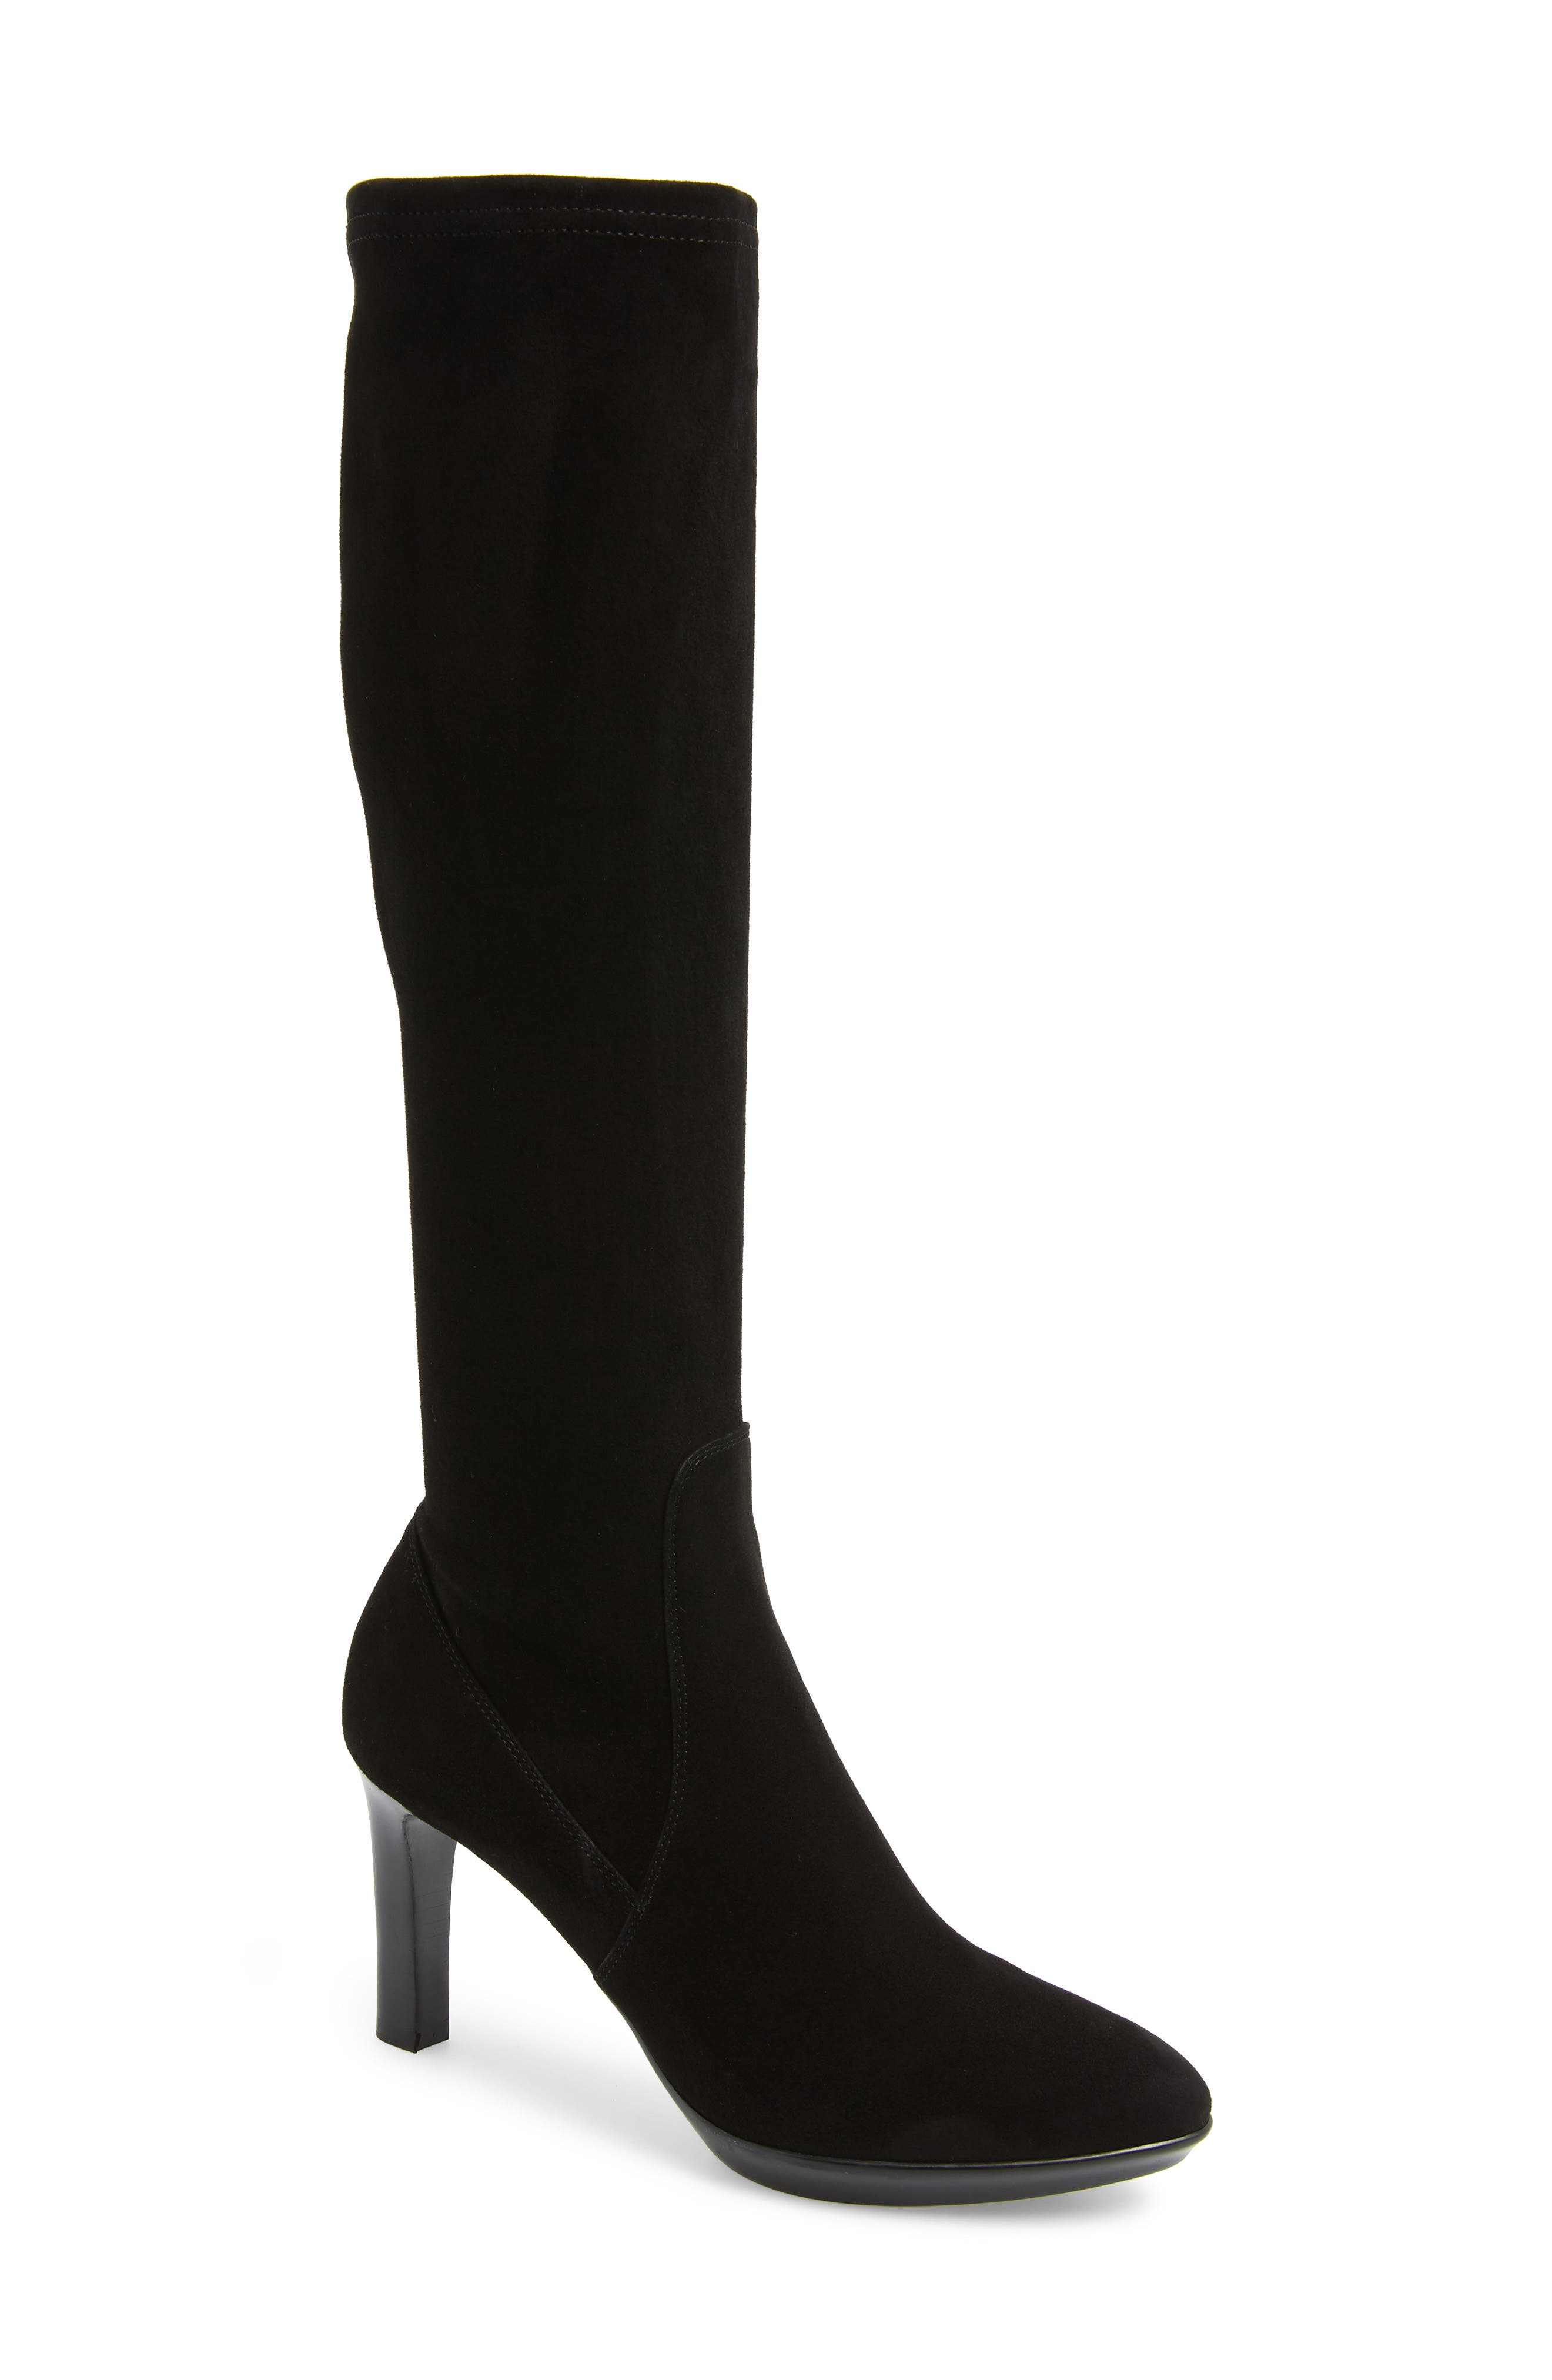 AQUATALIA Women'S Rhumba Tall Suede High-Heel Boots in Black